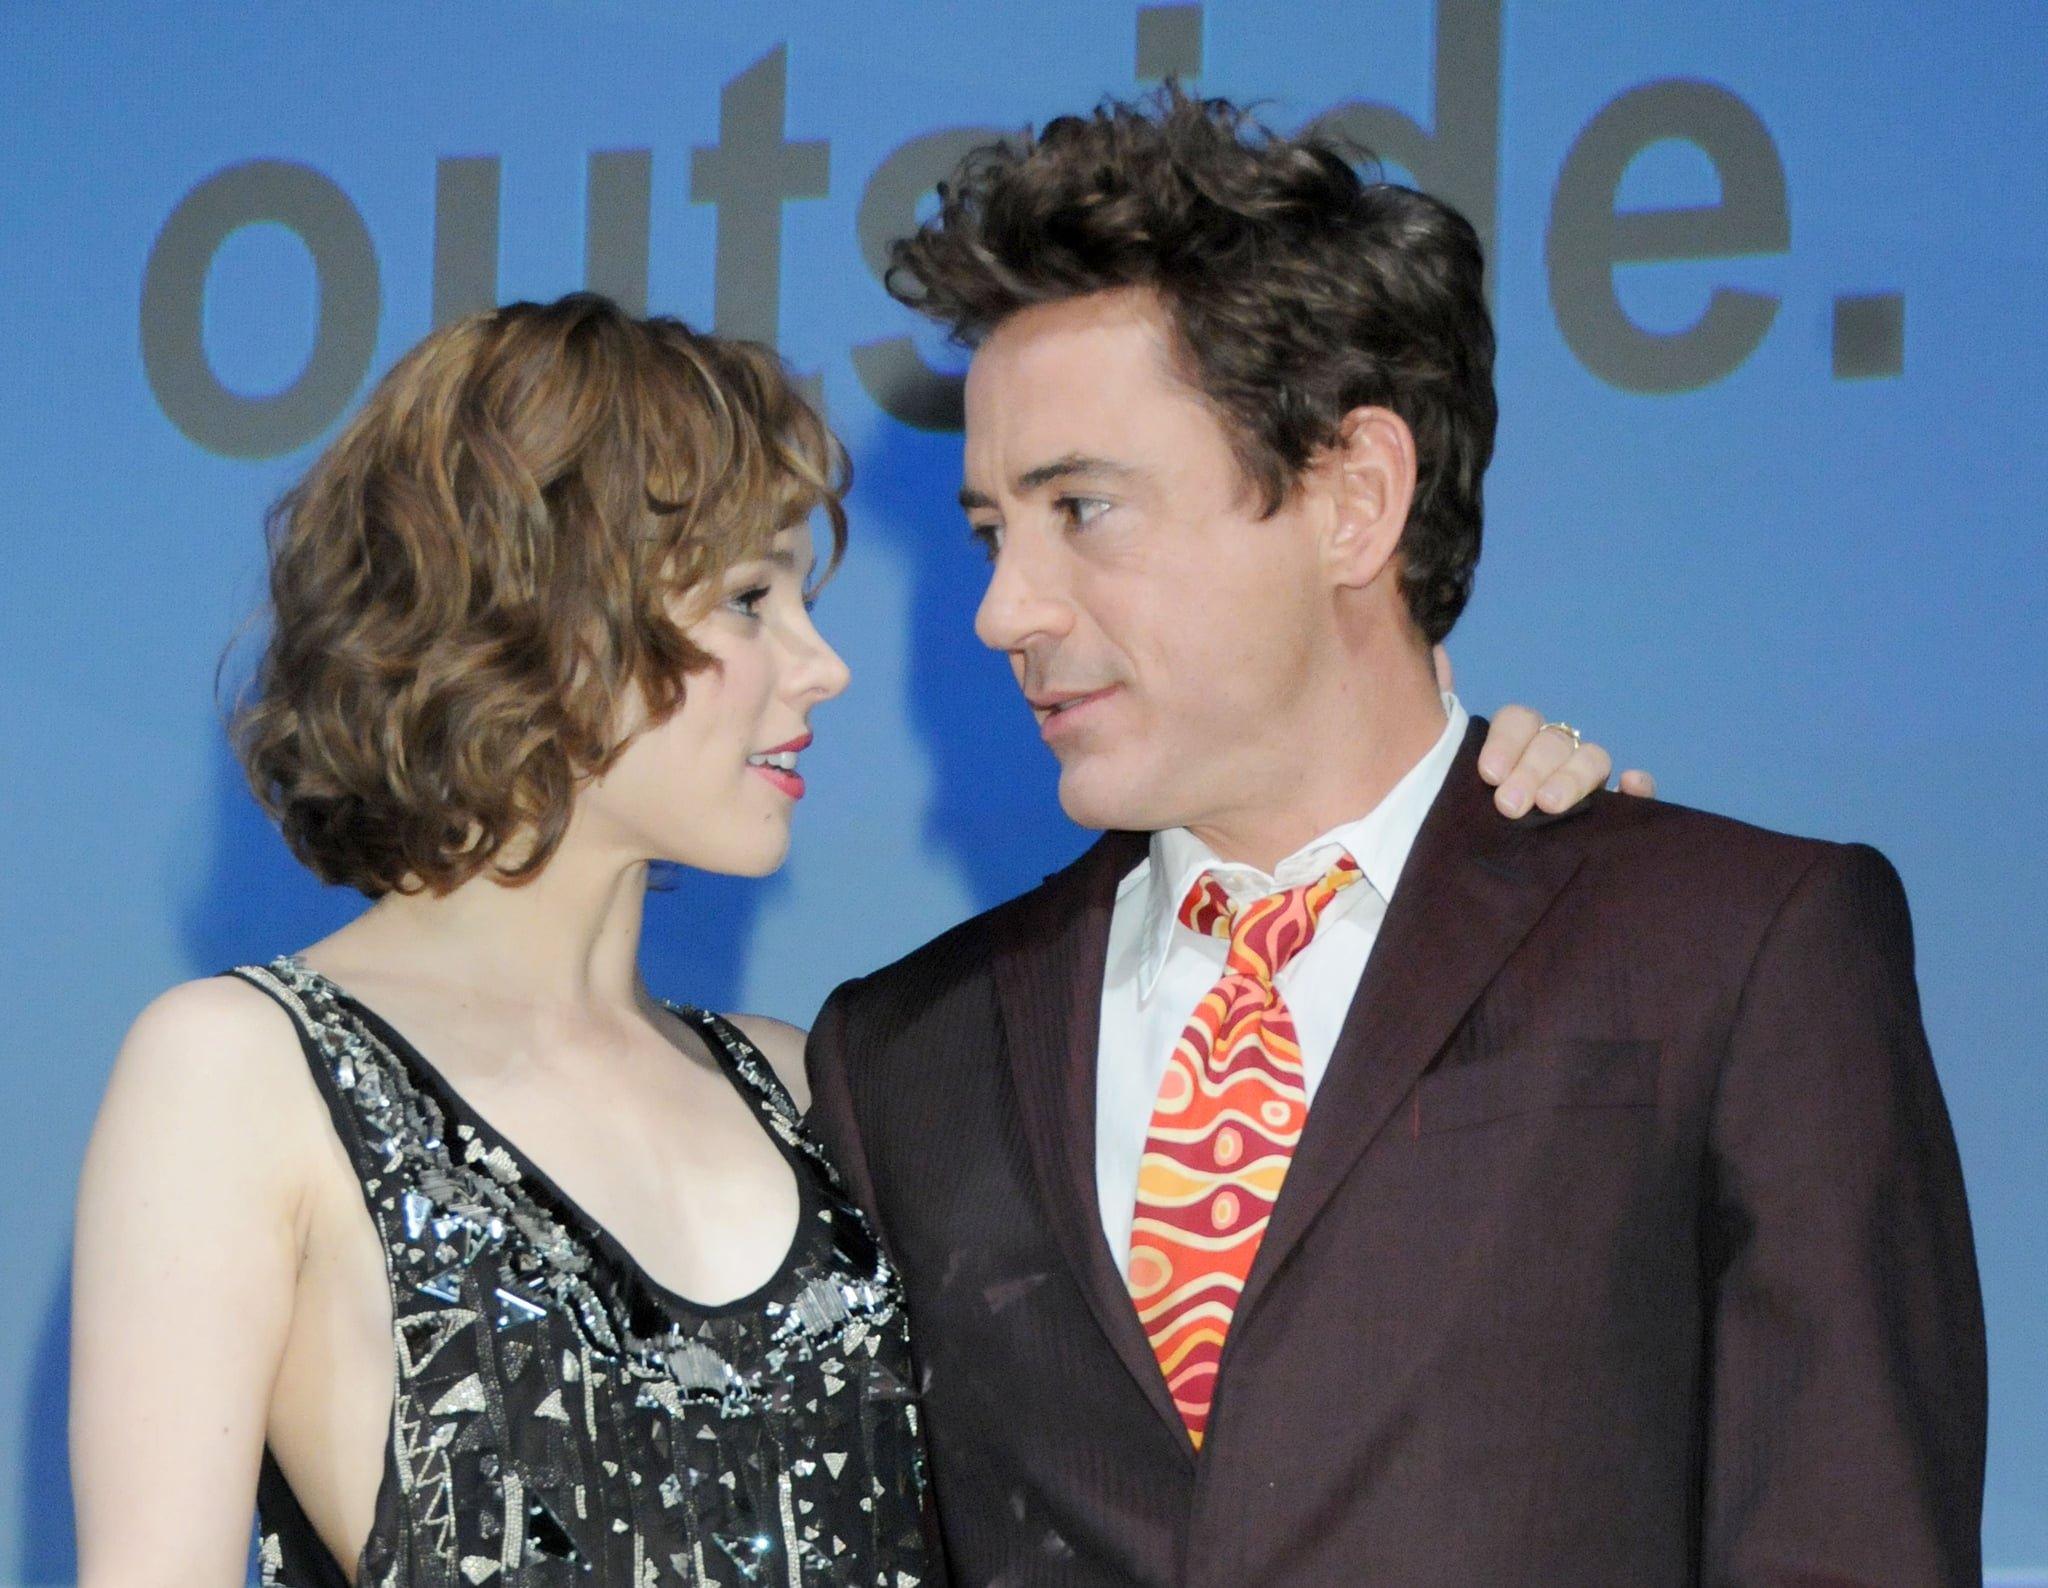 Rachel McAdams and Robert Downey Jr stayed close while promoting Sherlock Holmes in 2009.